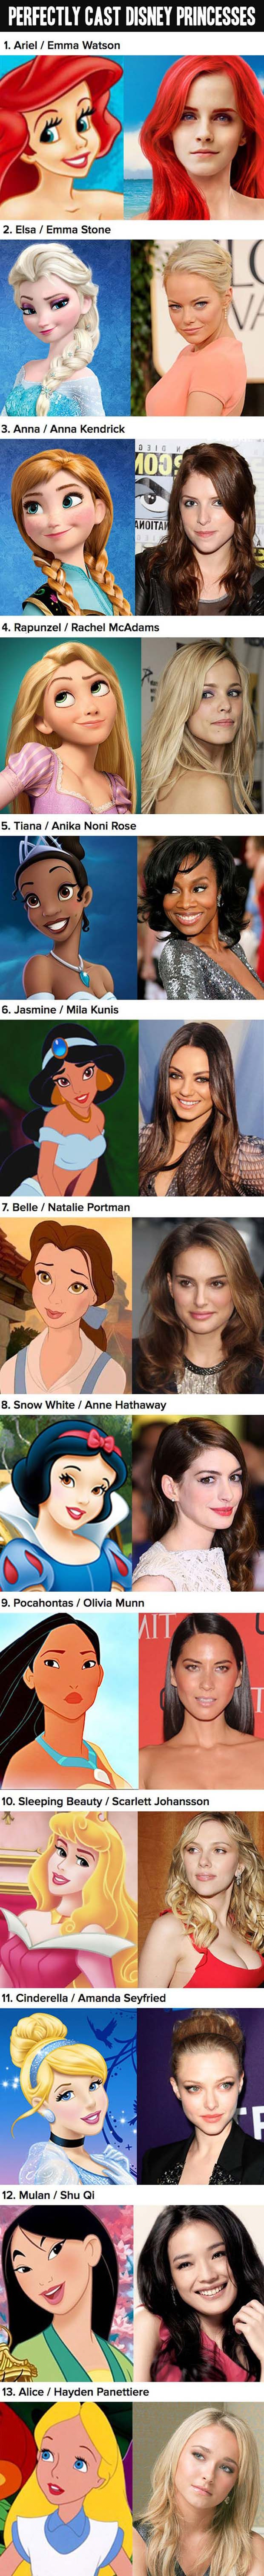 I wish they would start remaking these, using real people.  That would be amazing!   Love these choices for Princesses.  =)